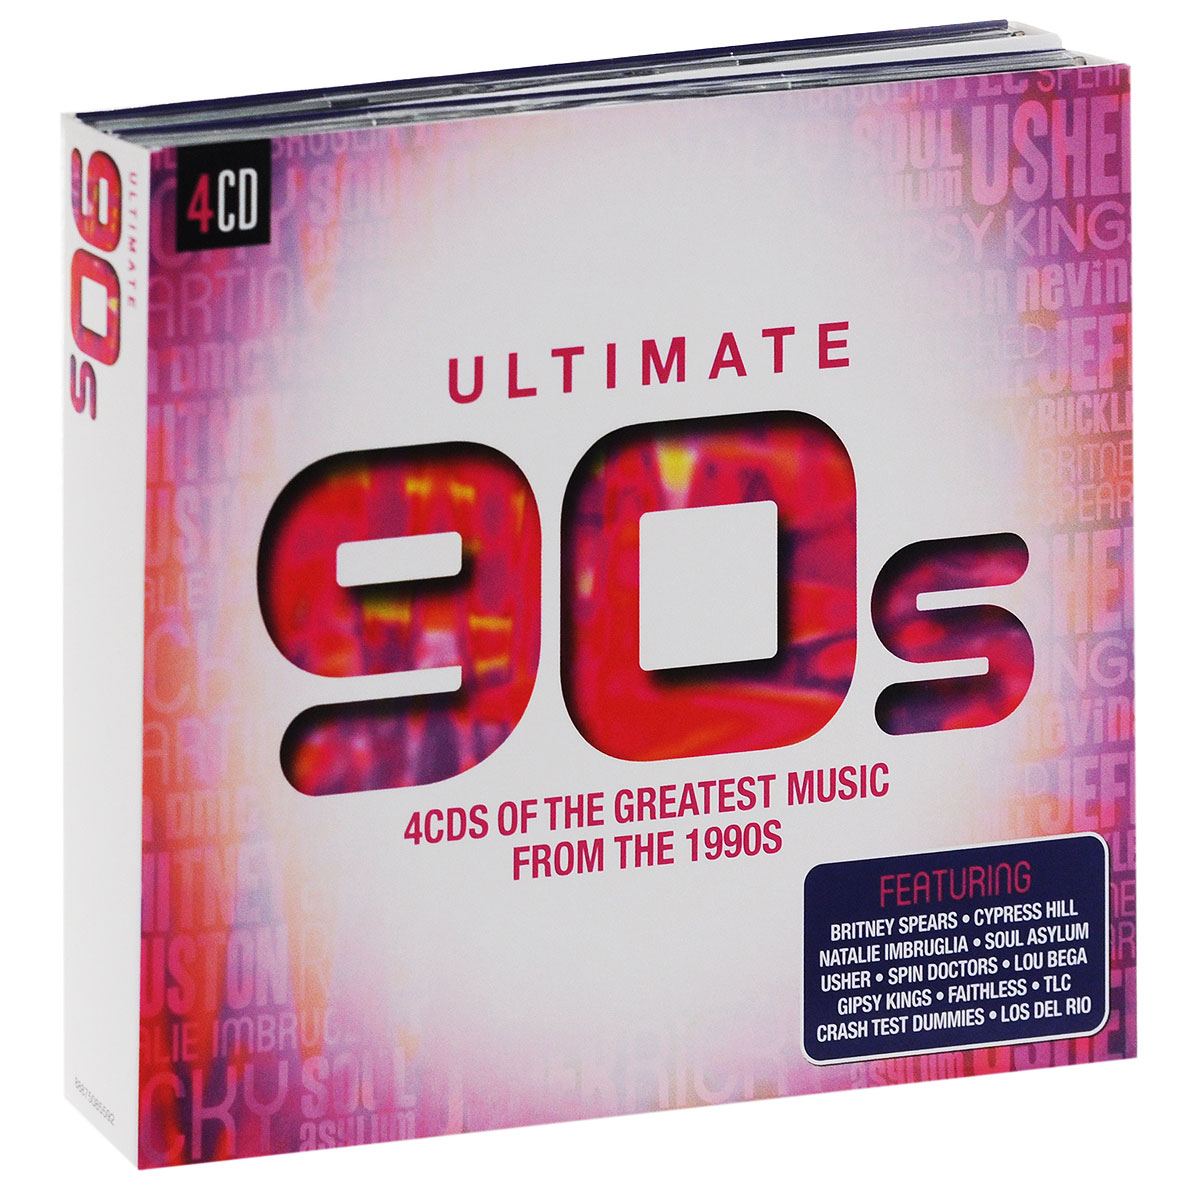 Faithless,Apollo 440,Scatman John,Rednex,B'Witched,Бетти Бу,Джеймс Лэнс,Los Del Rio,Лу Бега,Gipsy Kings Ultimate 90s (4 CD) gipsy kings düsseldorf